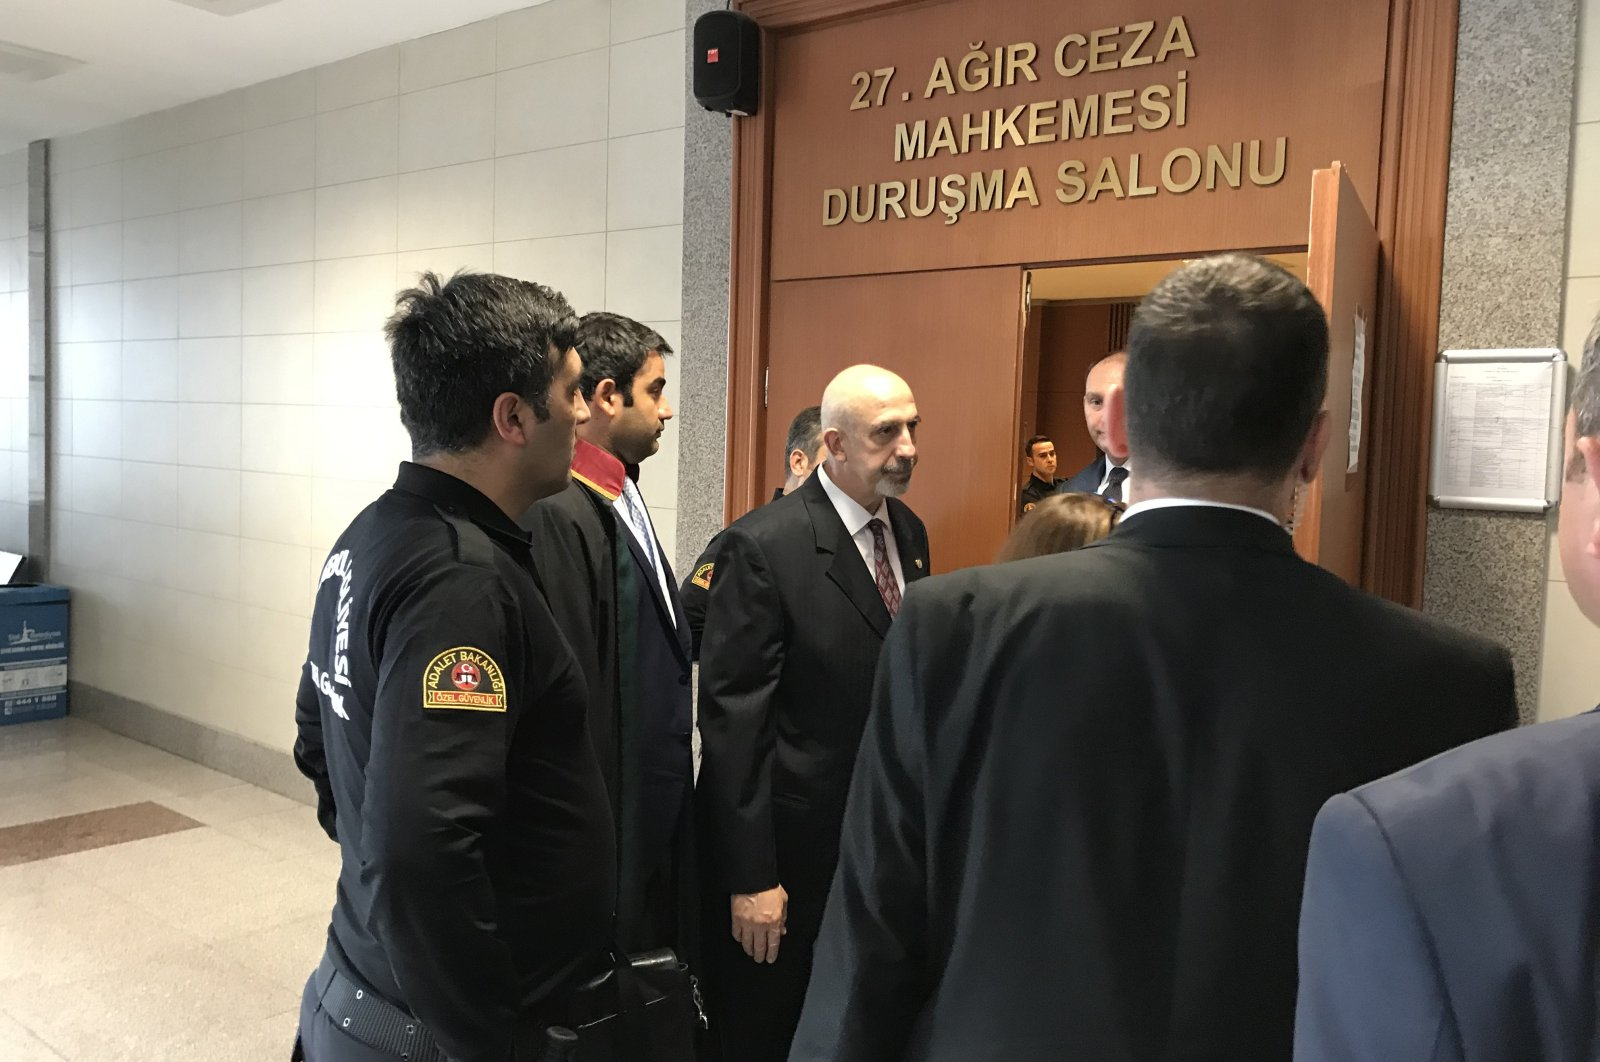 Nazmi Mete Cantürk (C) enters the courtroom for a hearing in Istanbul, Turkey, Oct. 2, 2019. (PHOTO BY FATİH ULAŞ)